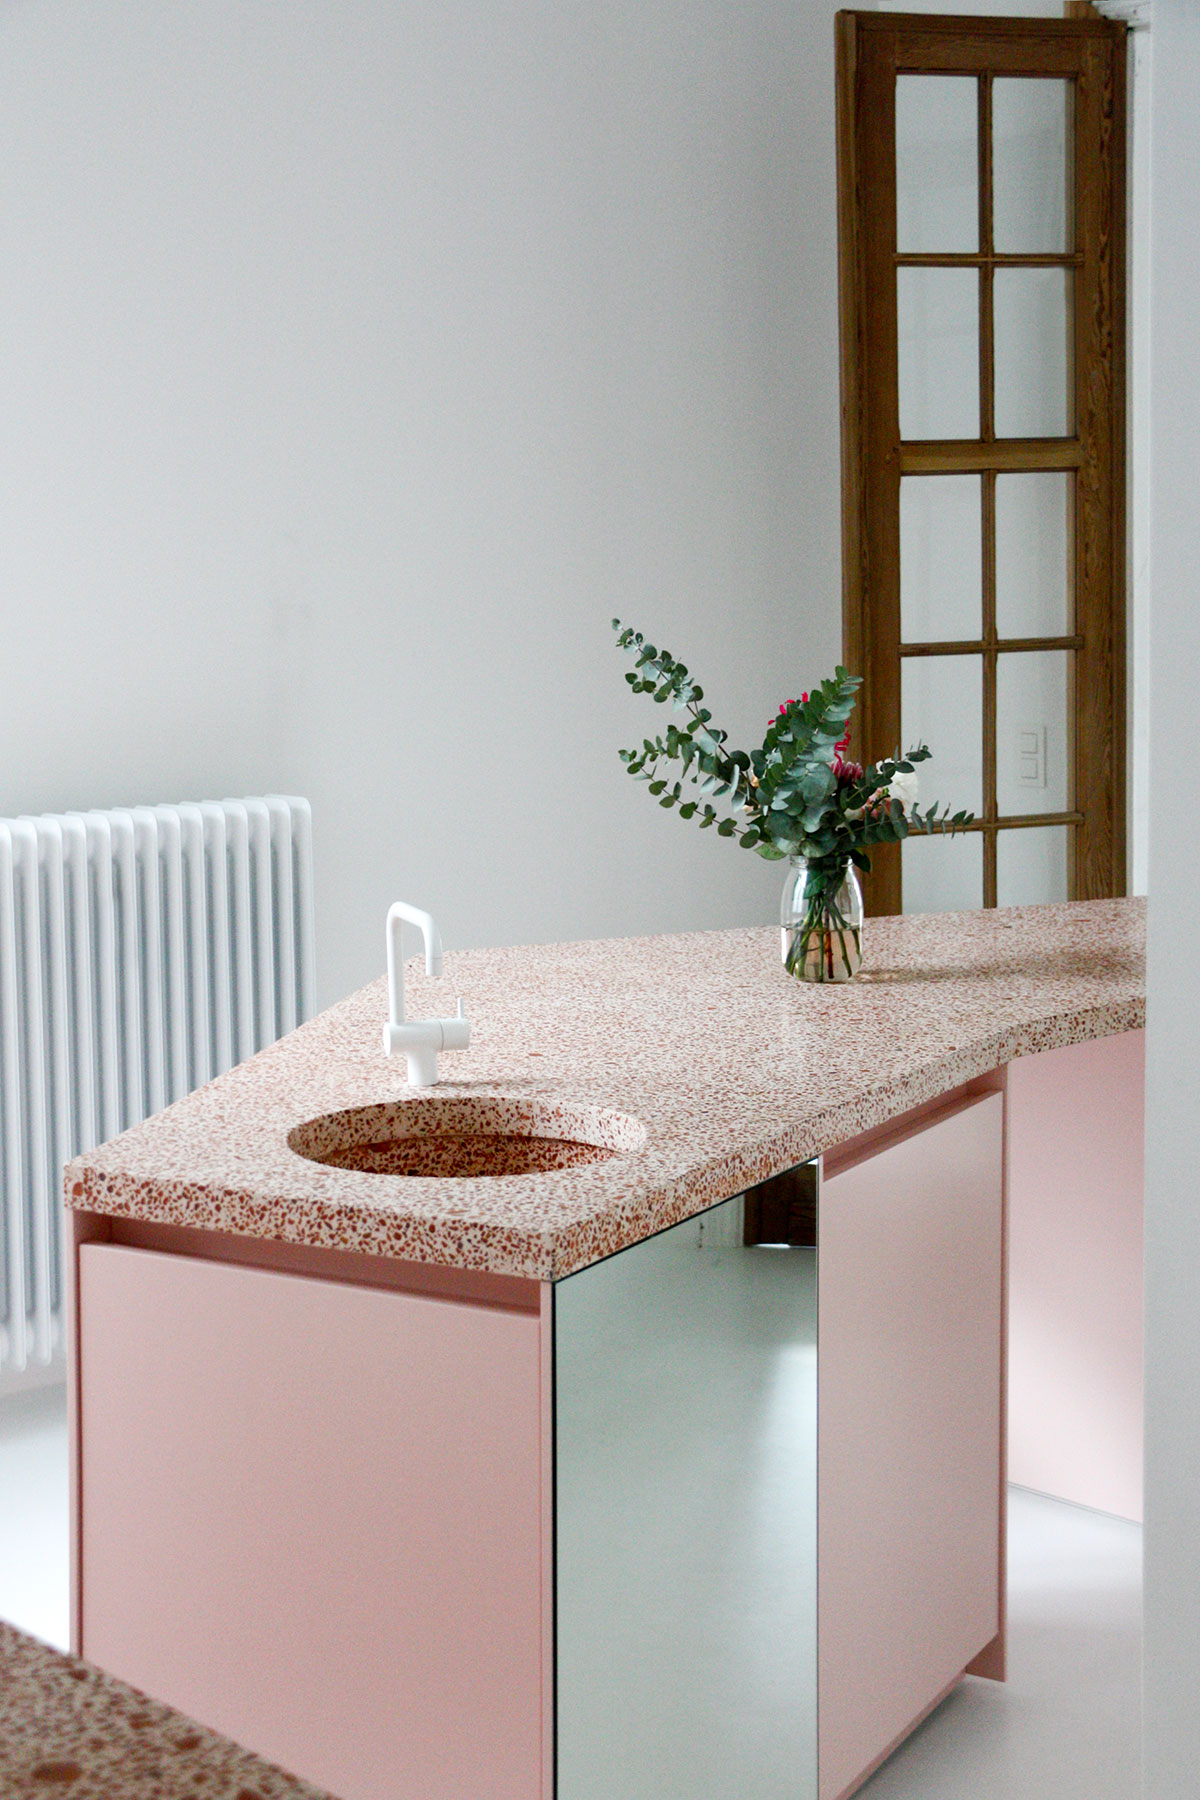 On Trend: Terrazzo is Making a Major Comeback | Apartment Therapy